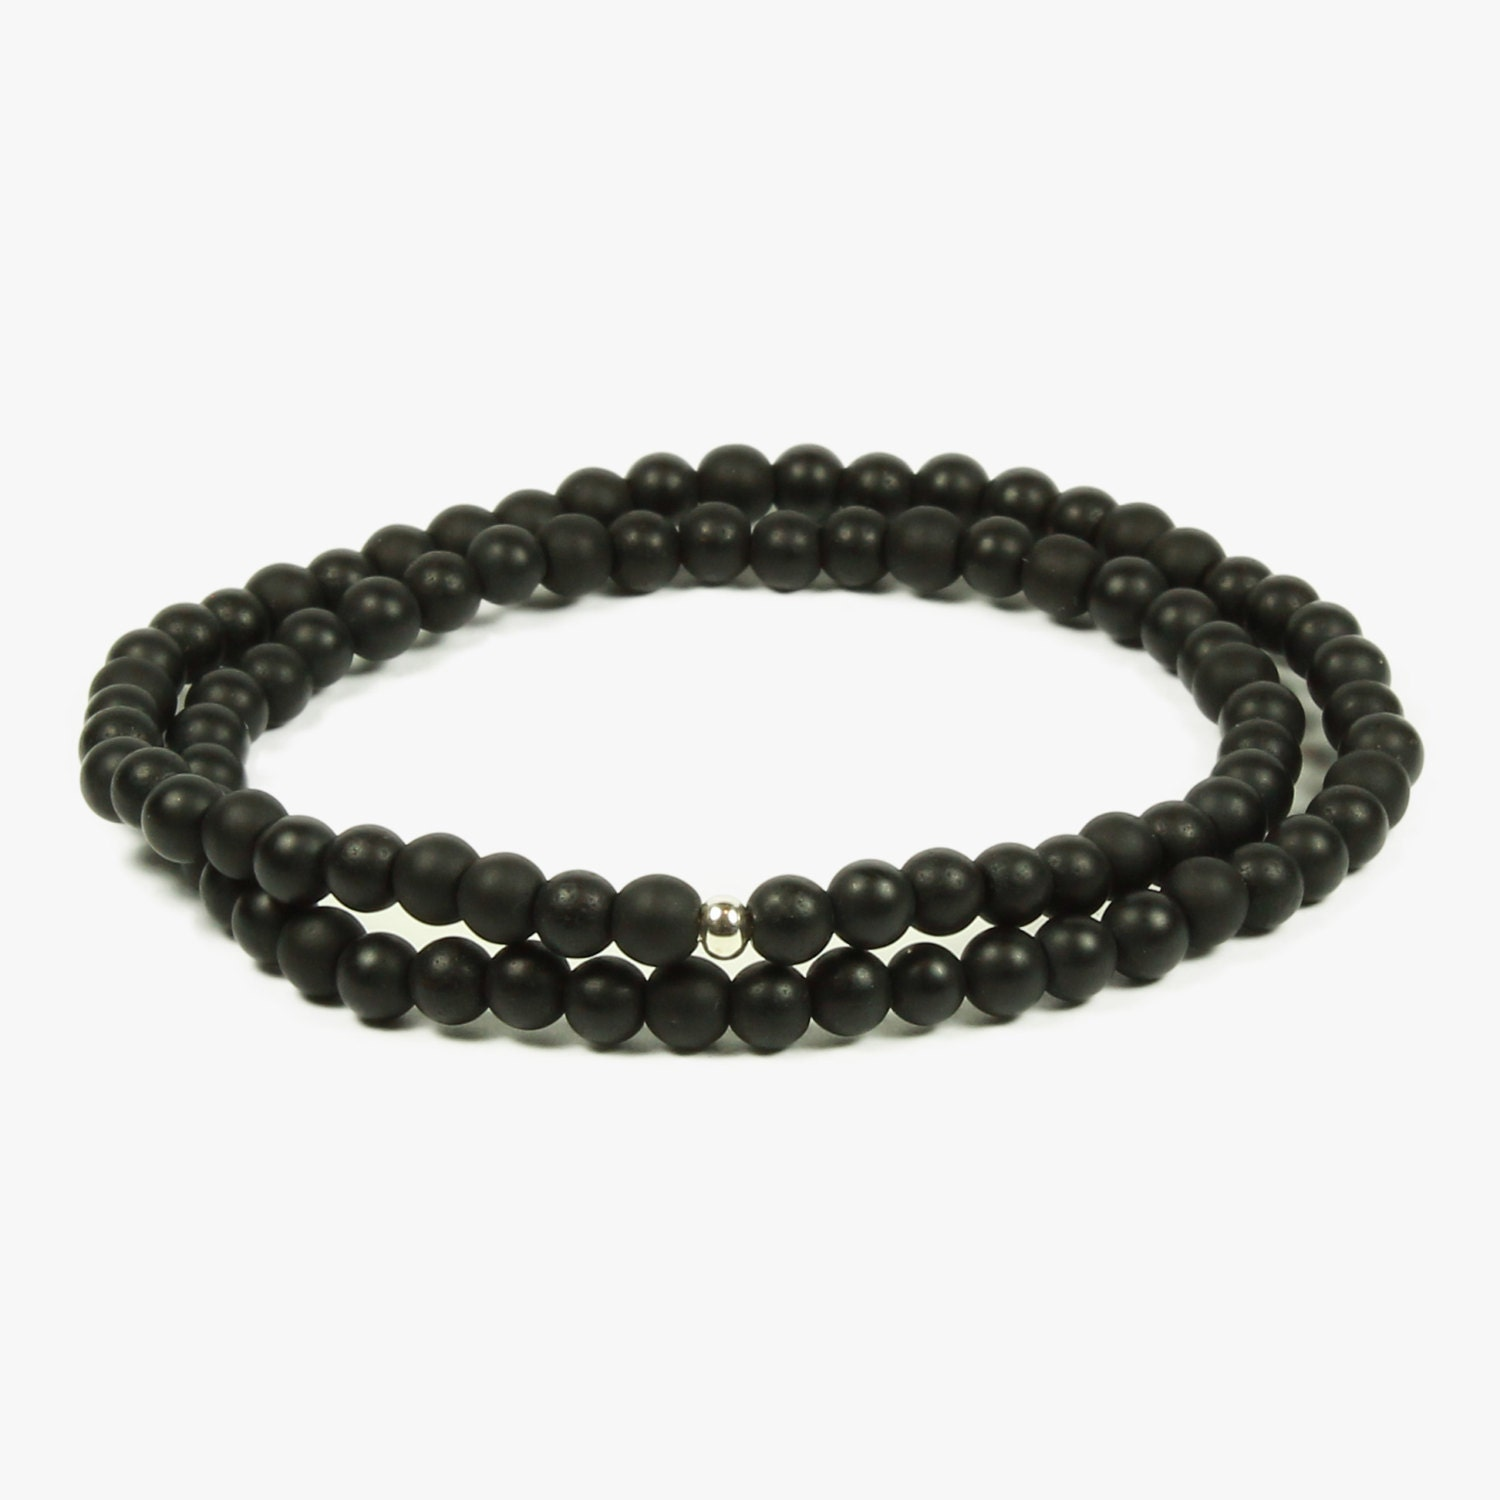 authentic matte black onyx bead bracelet with sterling silver